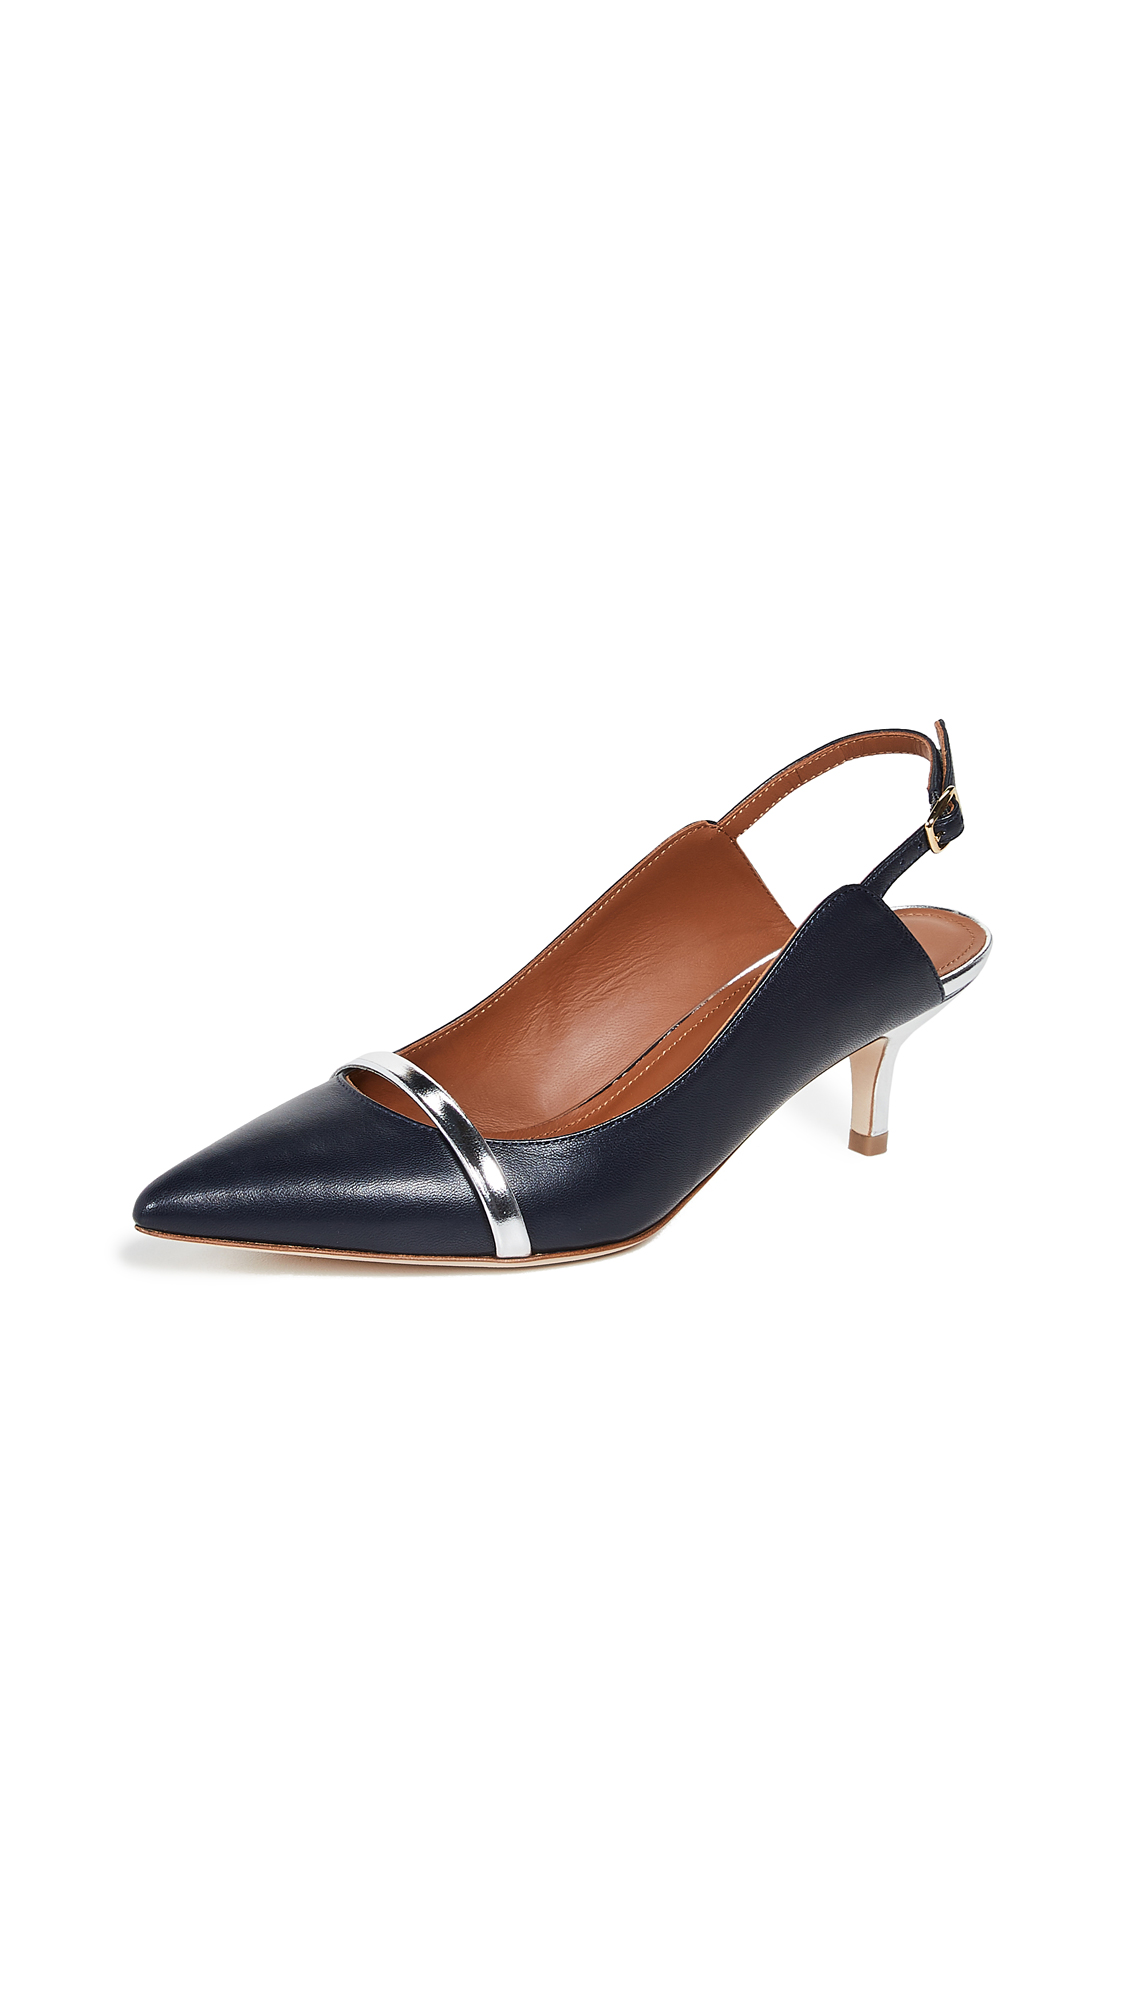 Malone Souliers Marion 45 Slingback Pumps - Navy/Silver